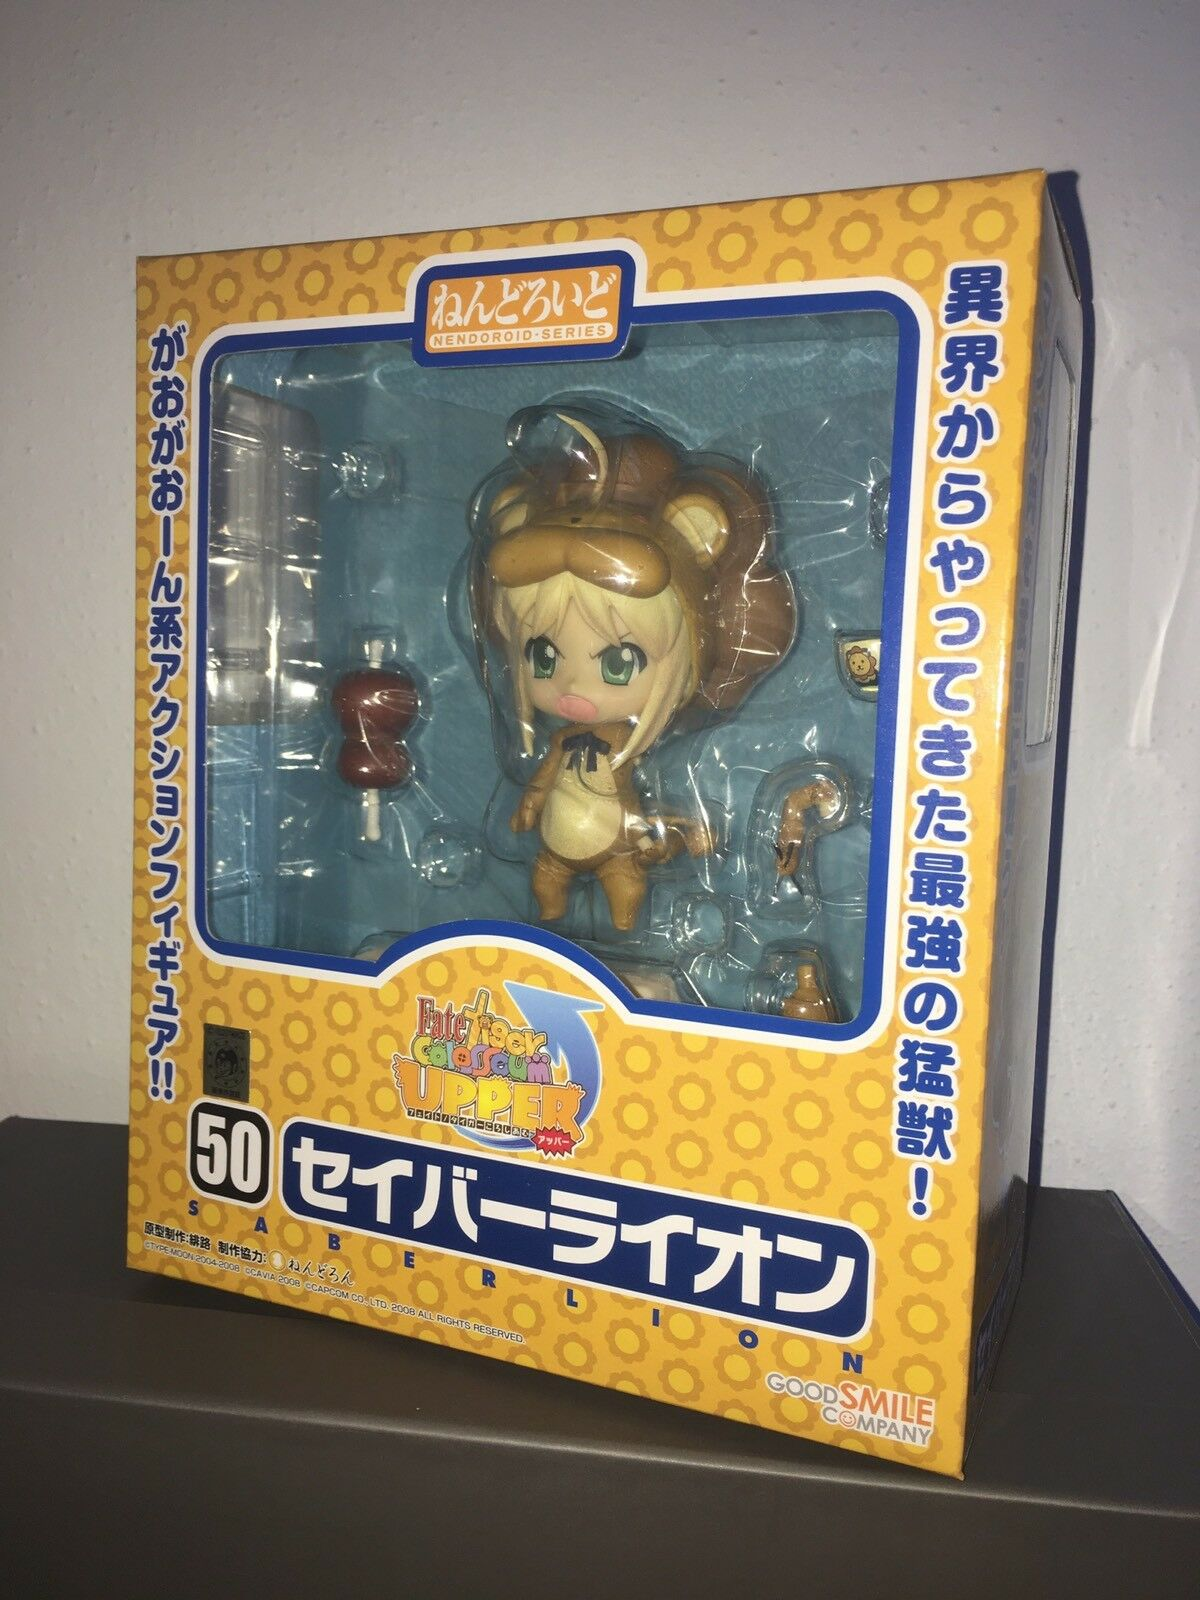 Nendgoldid Saber Lion Good Smile Company Original Fate Stay Night Action Figure